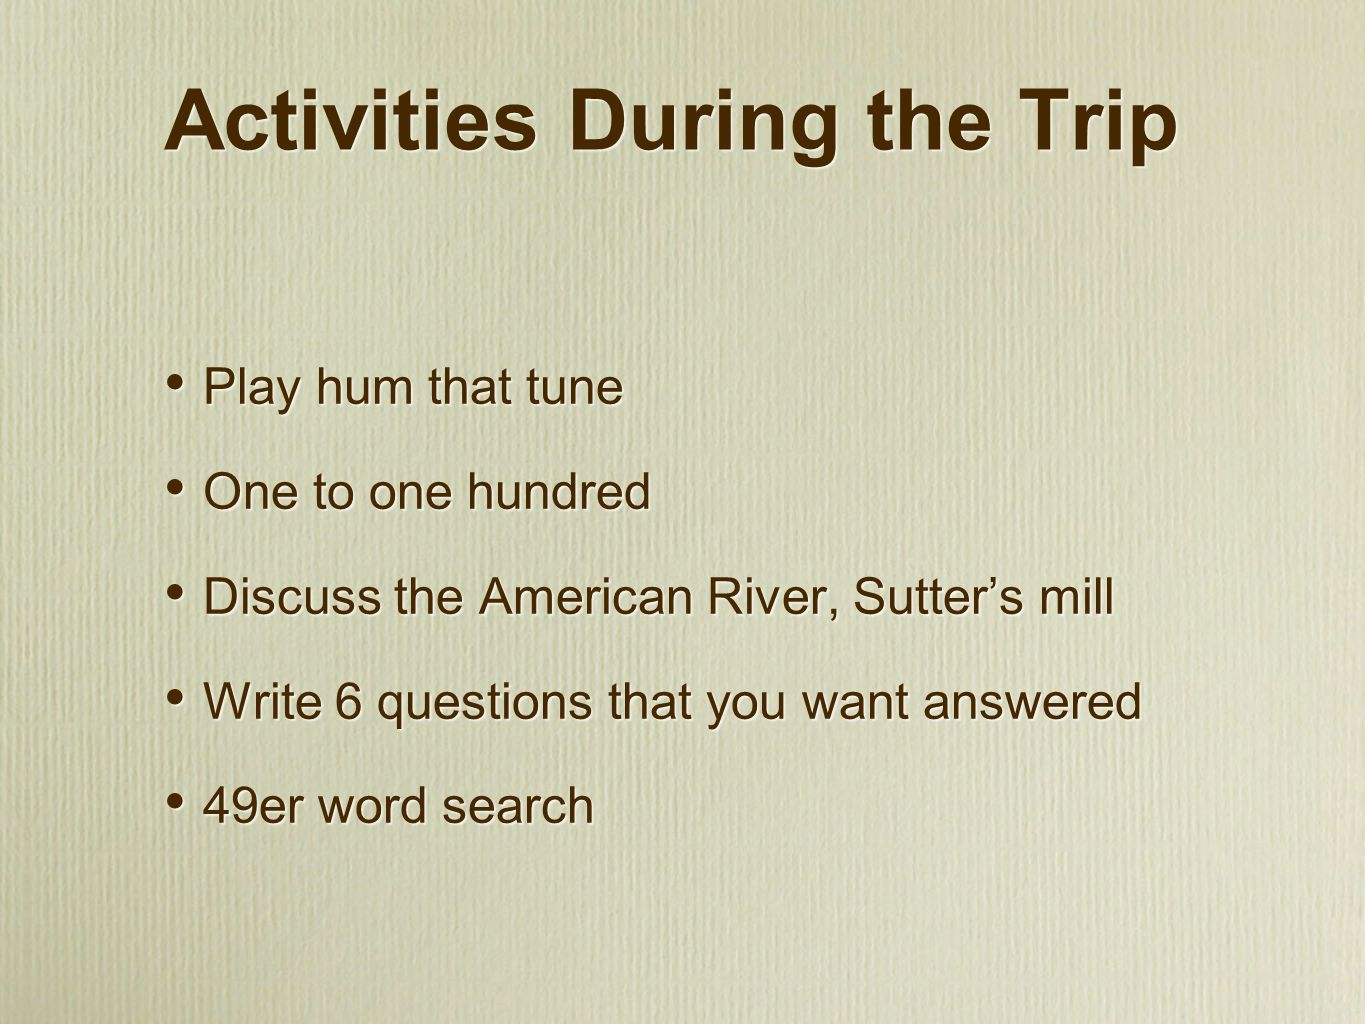 Activities During the Trip Play hum that tune One to one hundred Discuss the American River, Sutter's mill Write 6 questions that you want answered 49er word search Play hum that tune One to one hundred Discuss the American River, Sutter's mill Write 6 questions that you want answered 49er word search